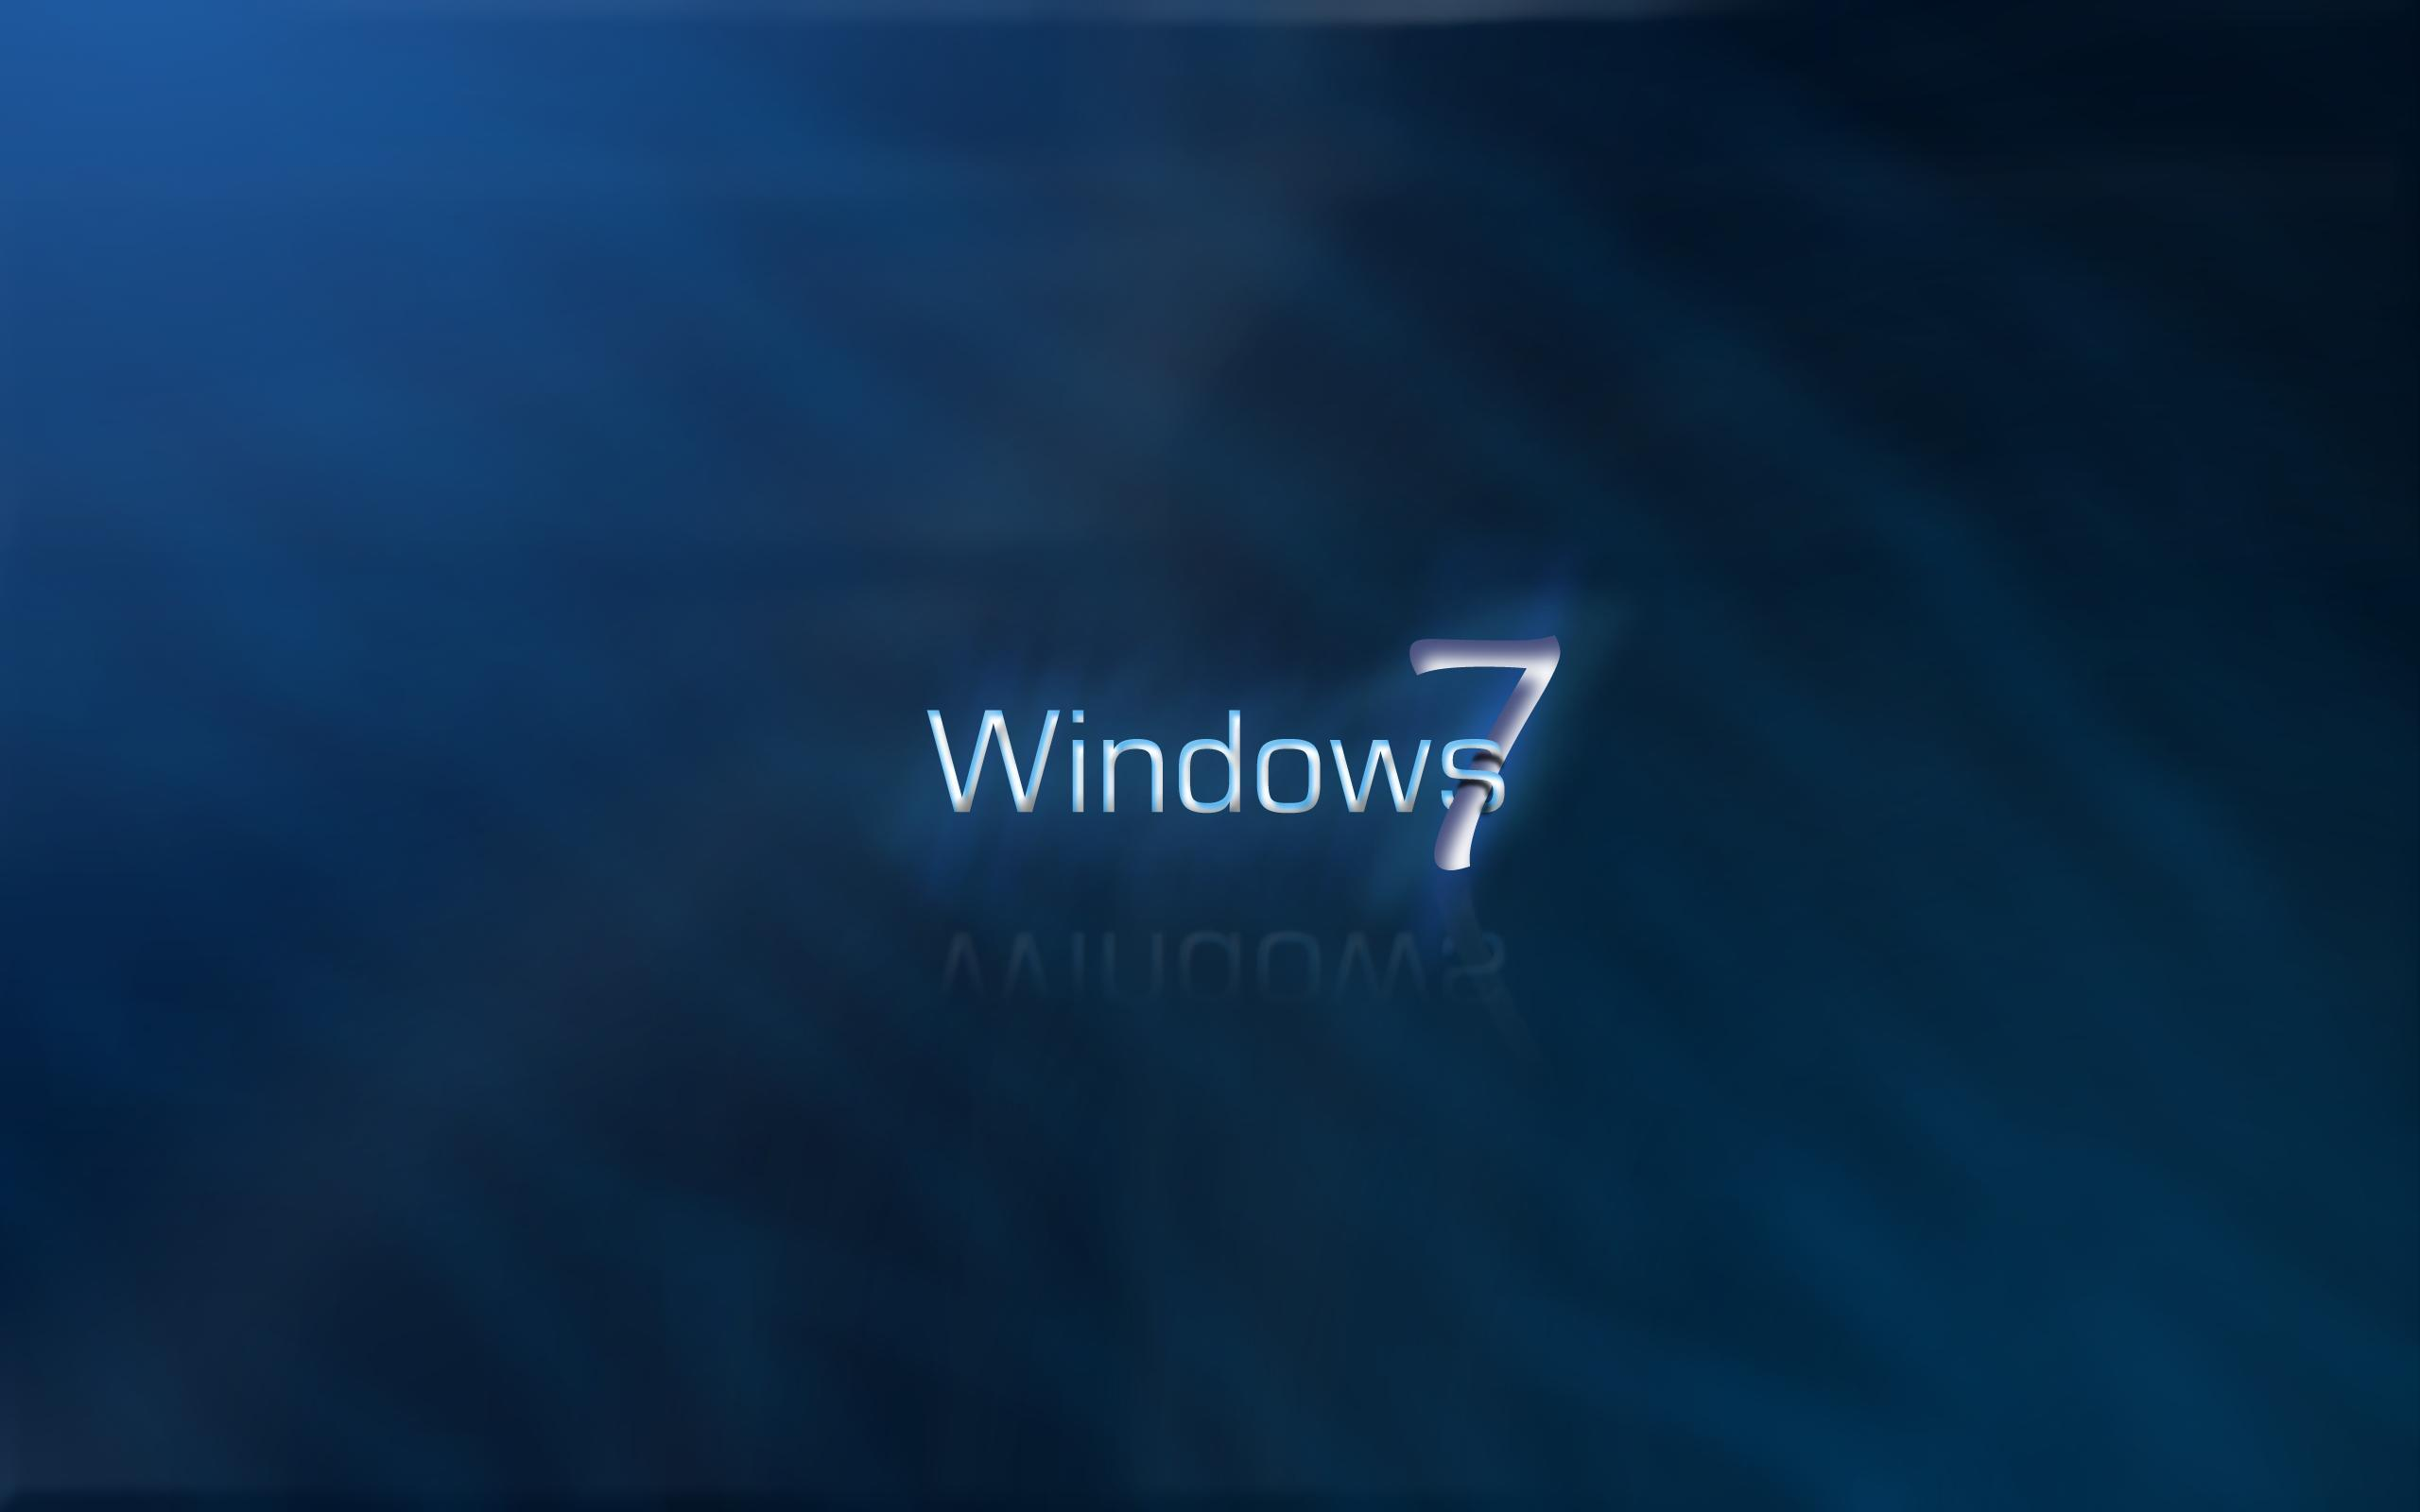 Free Windows 7 Wallpapers - Wallpaper Cave